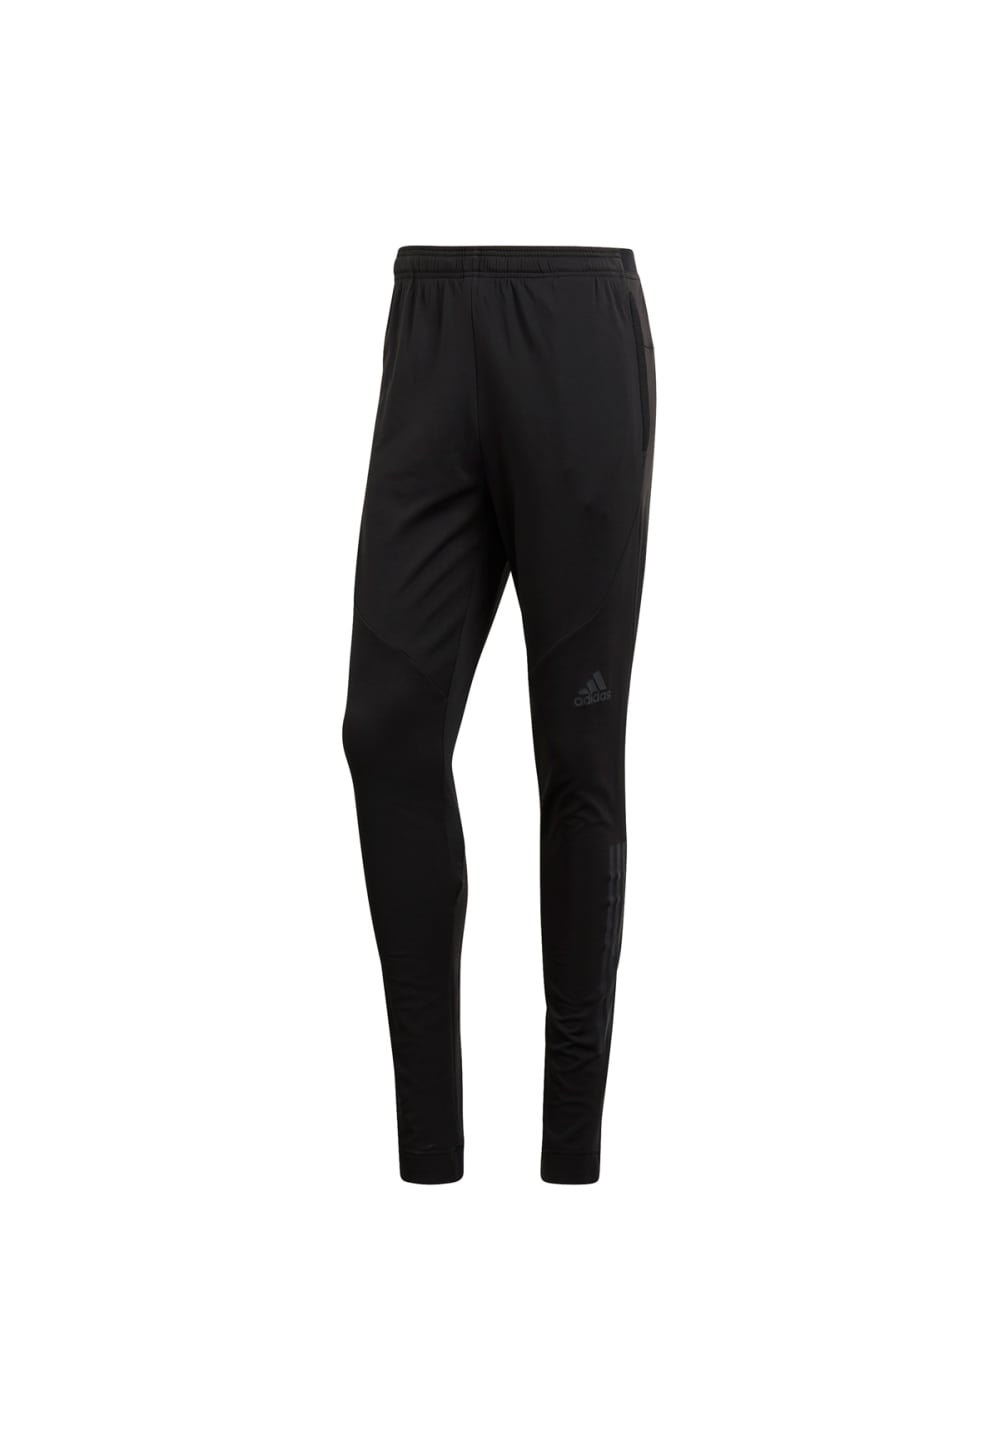 timeless design a2d79 d6abf adidas Workout Pant Climacool Knit - Fitness trousers for Men - Black